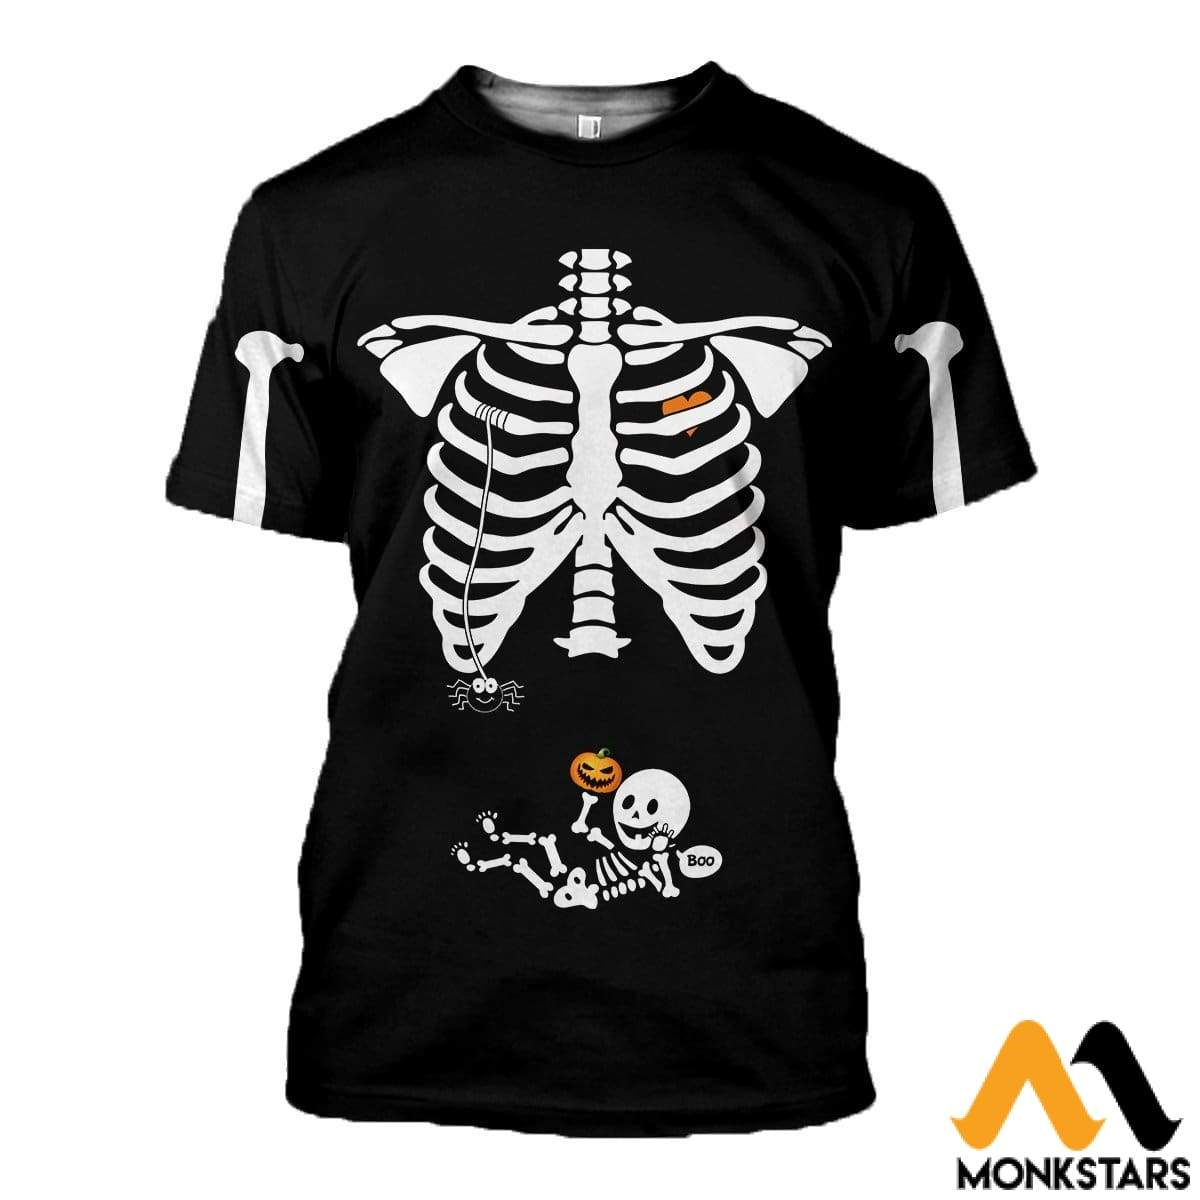 3D All Over Printed Pregnant Skeleton Shirts And Shorts T-Shirt / Xs Clothes